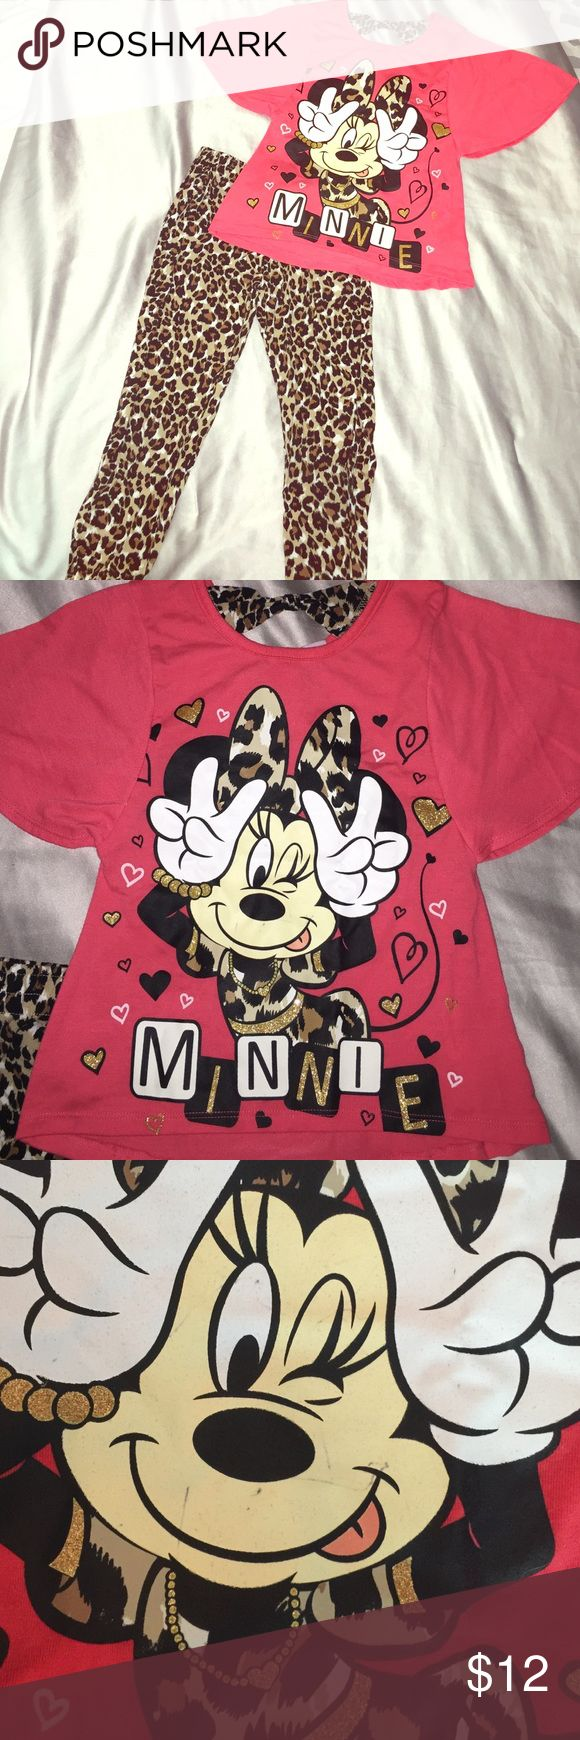 Winking Minnie Mouse Cheetah Outfit Gently used. A little ink marks on Minnie's face, but not very noticeable. An orange pink. Light wear and tear. XS girls 4/5 Disney Matching Sets